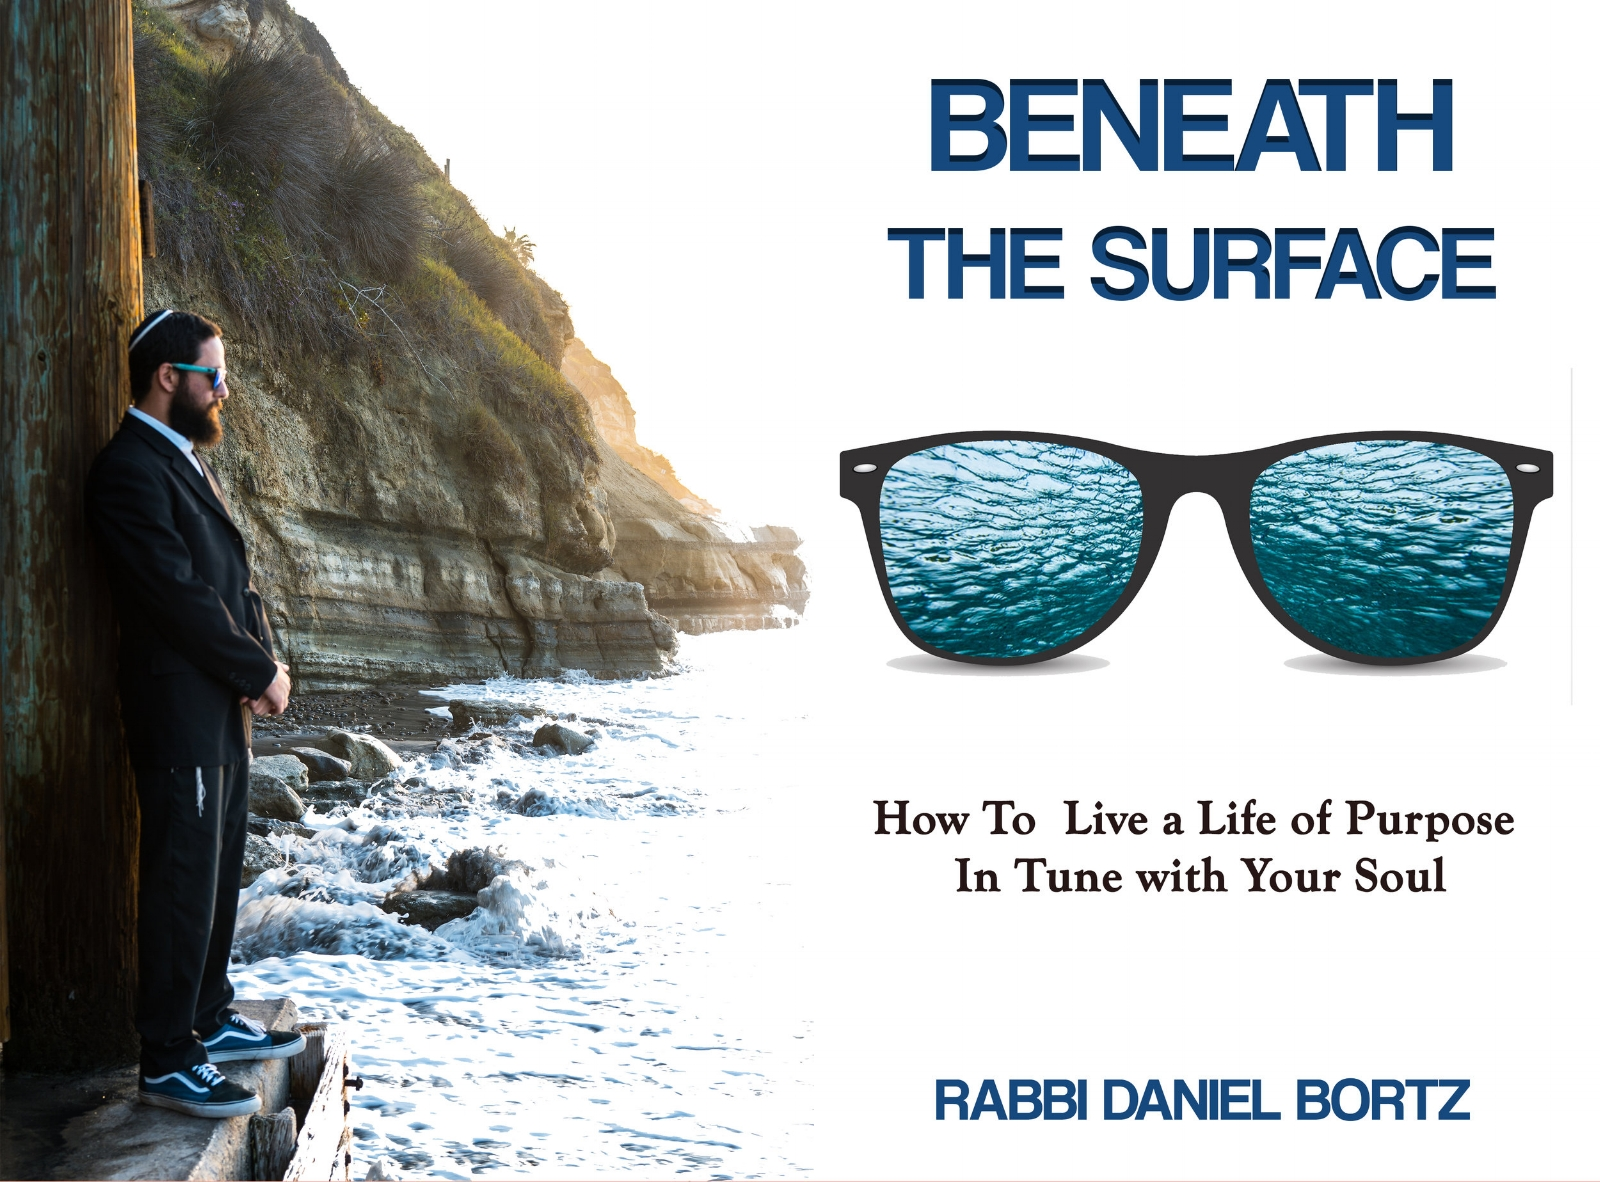 Just Released - Rabbi Bortz's First Book